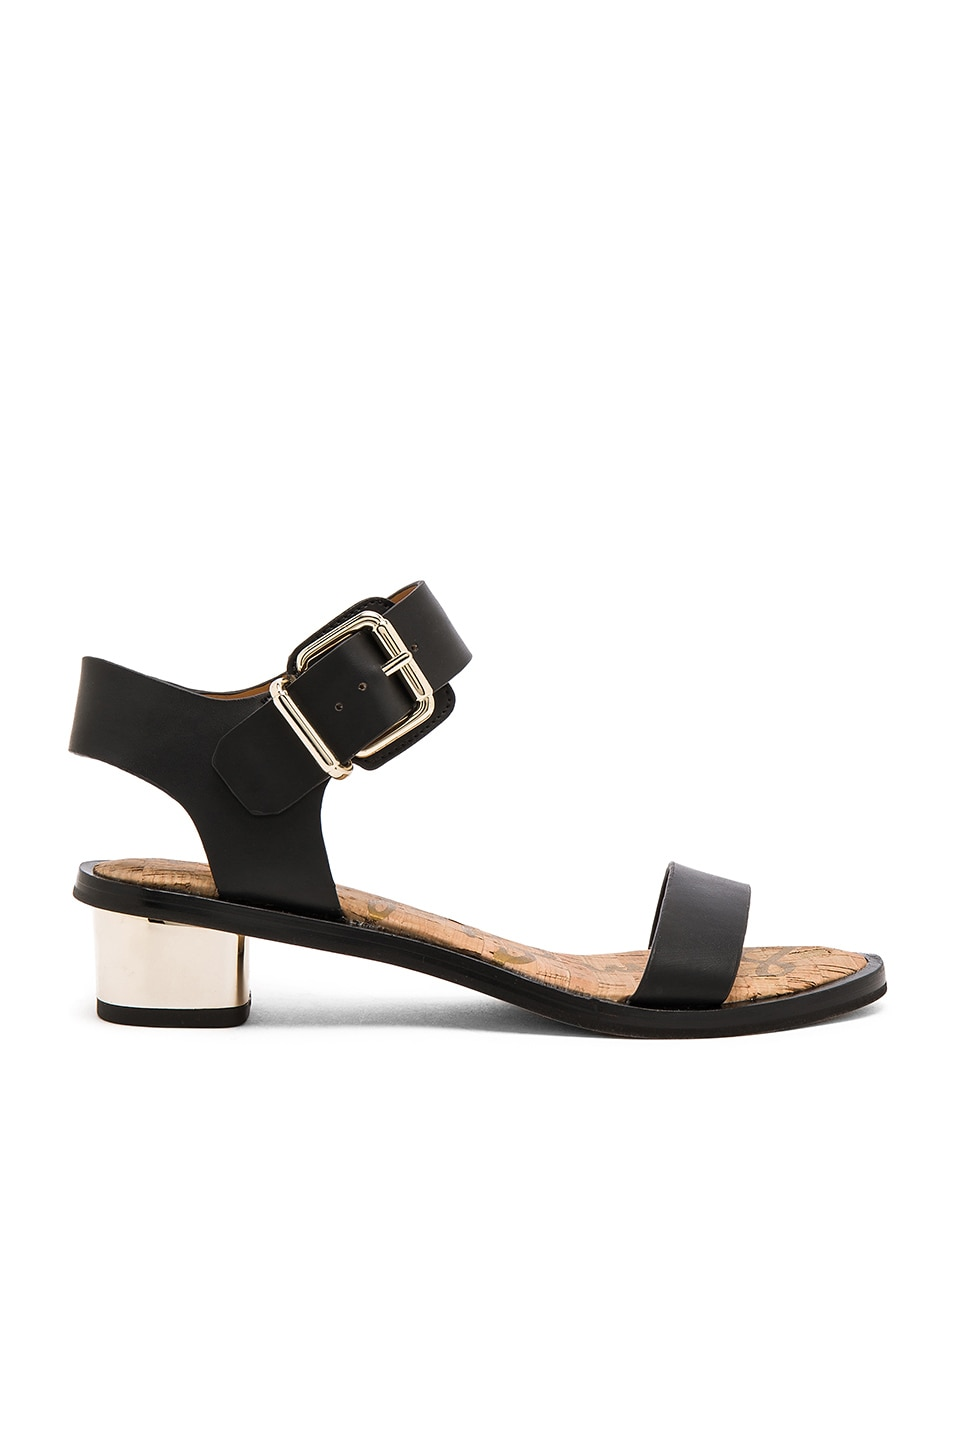 Sam Edelman Trixie Sandal in Black